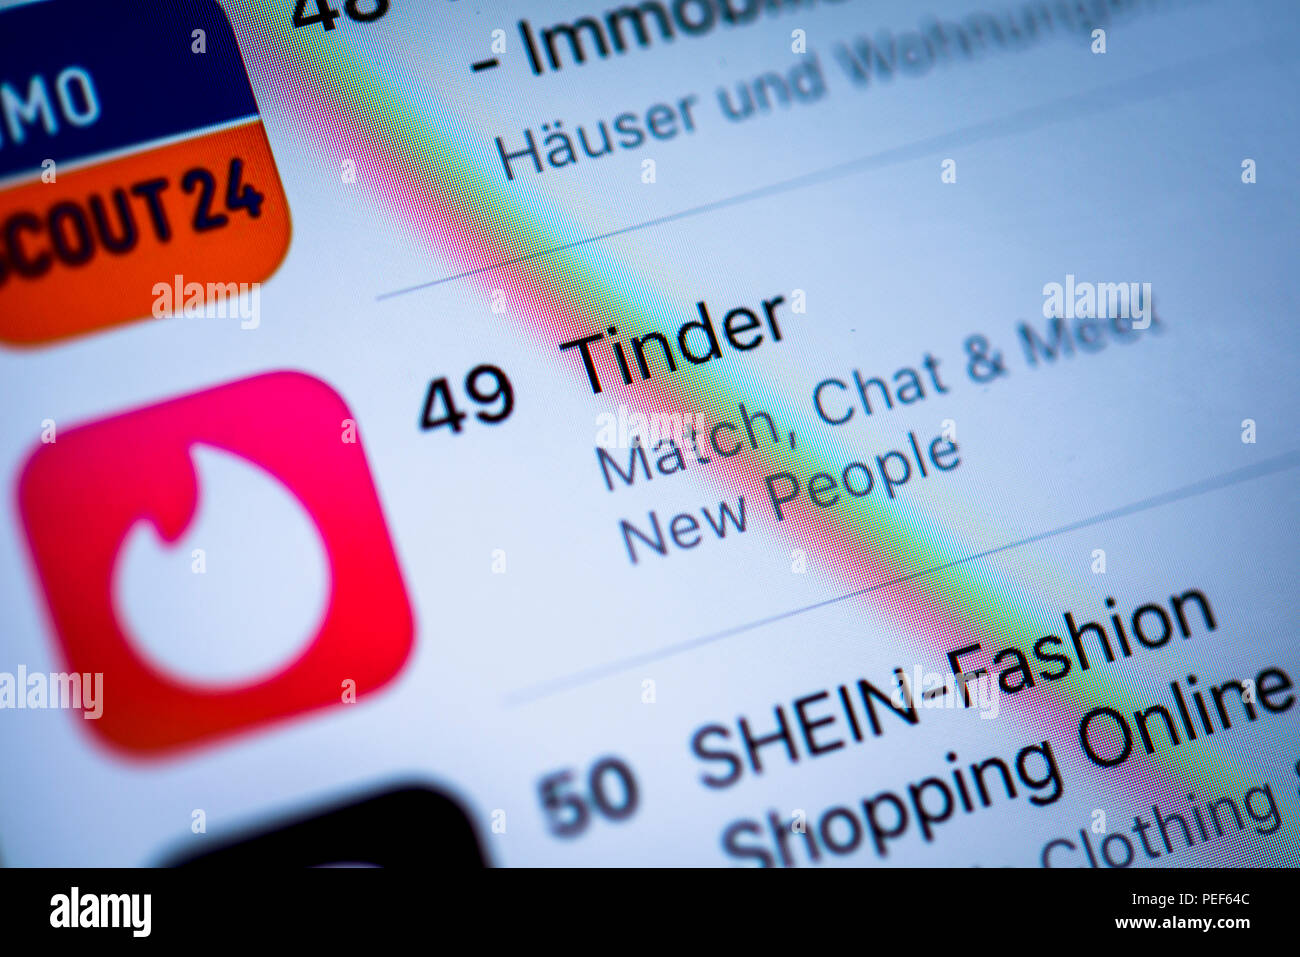 Bedste apple apps til dating